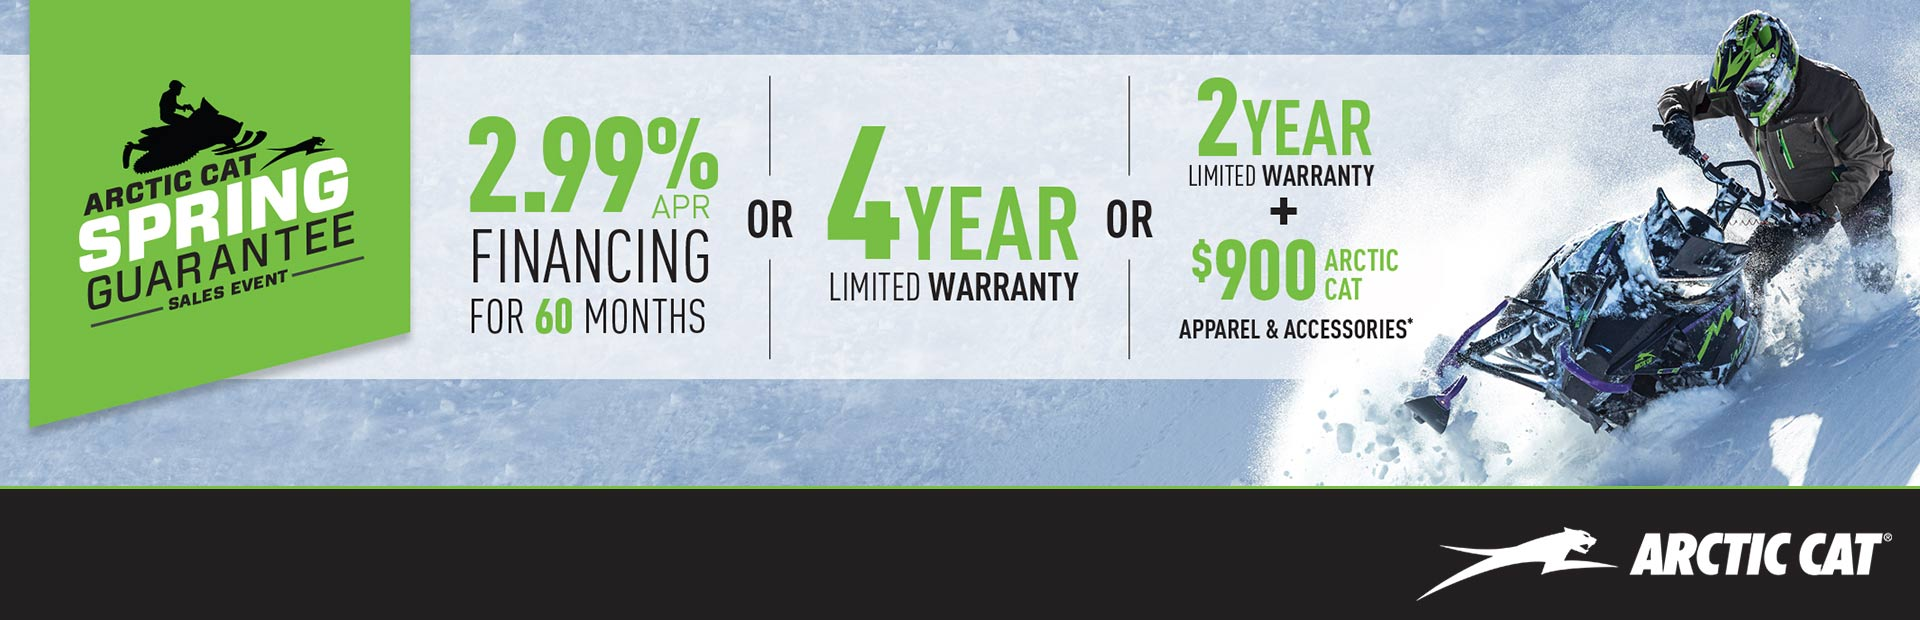 Arctic Cat: Spring Guarantee